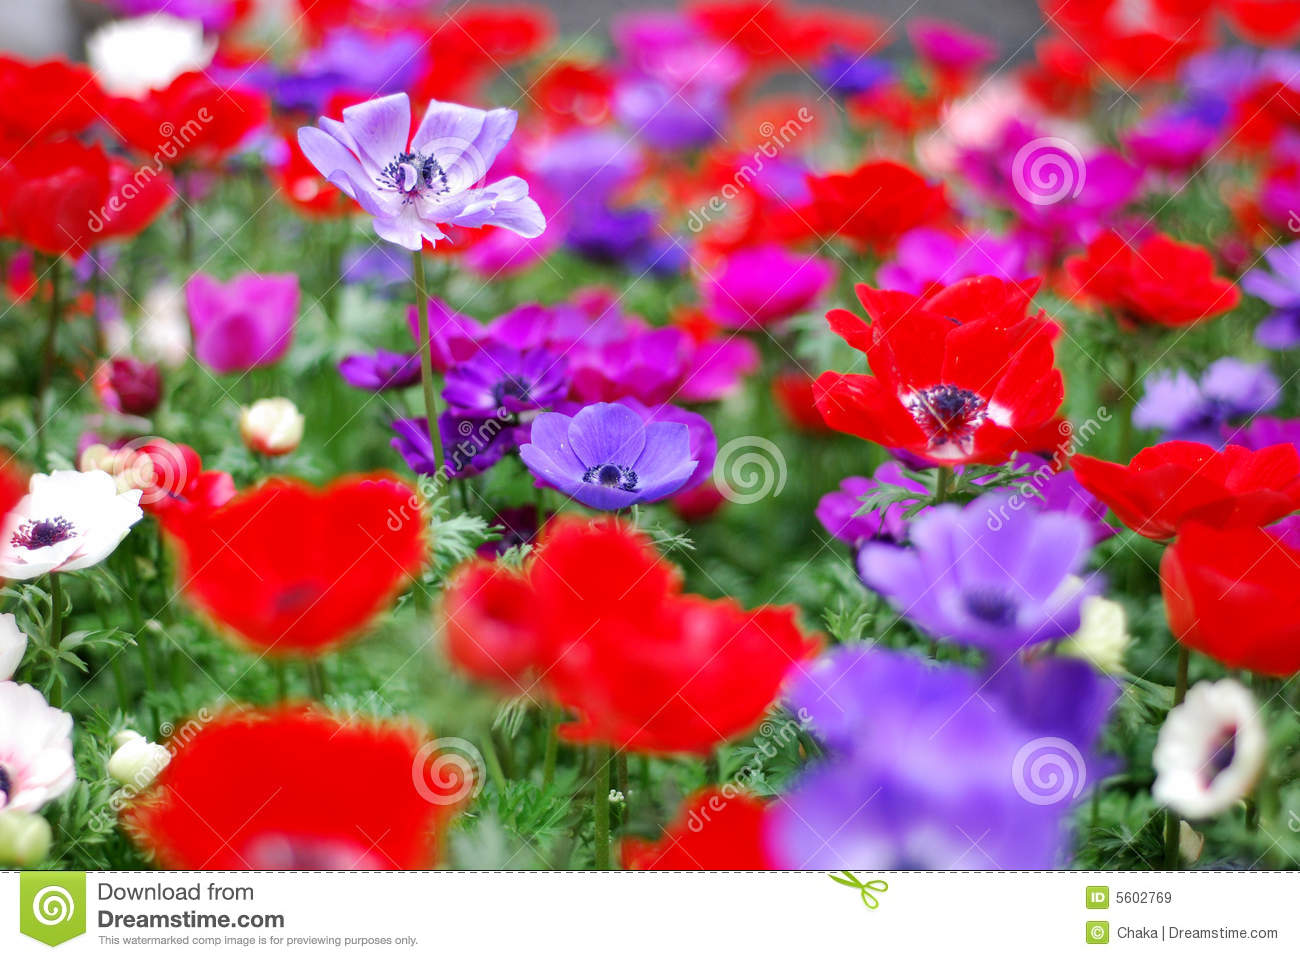 Red Flower And Purple Flower Stock Image - Image of vivid, lucky ...